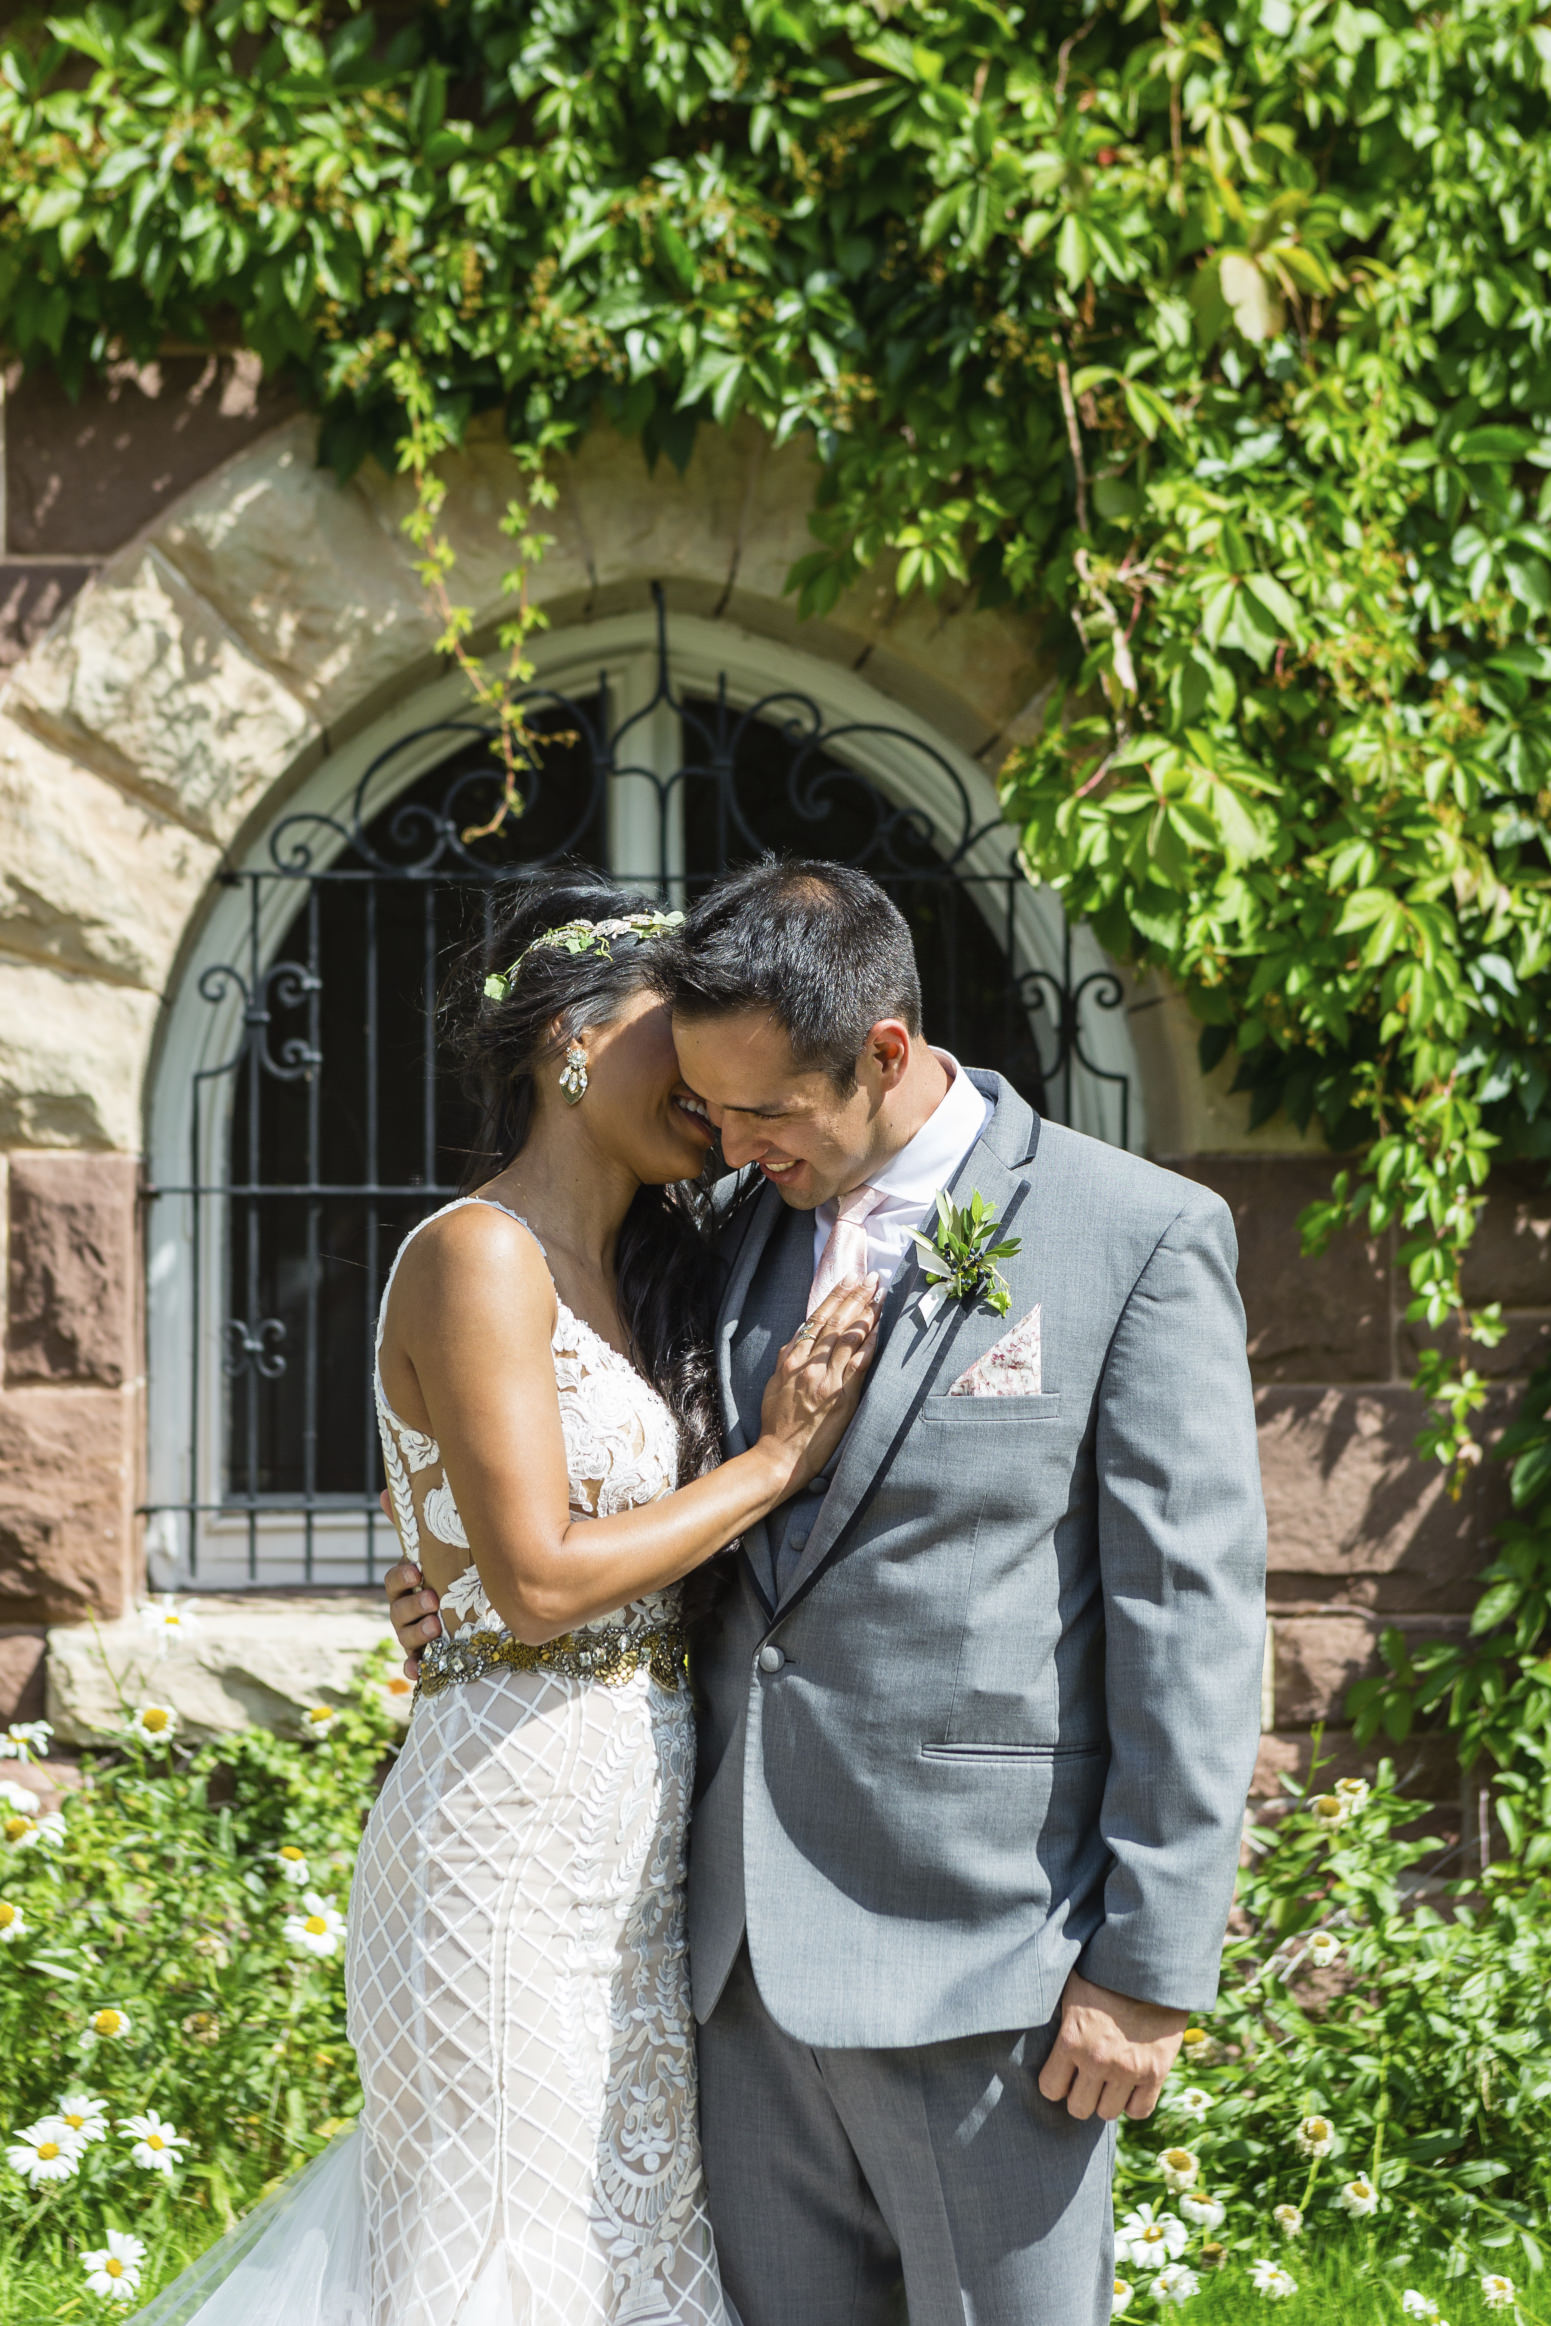 Wedding Photographers in Colorado | Windfirm Photography